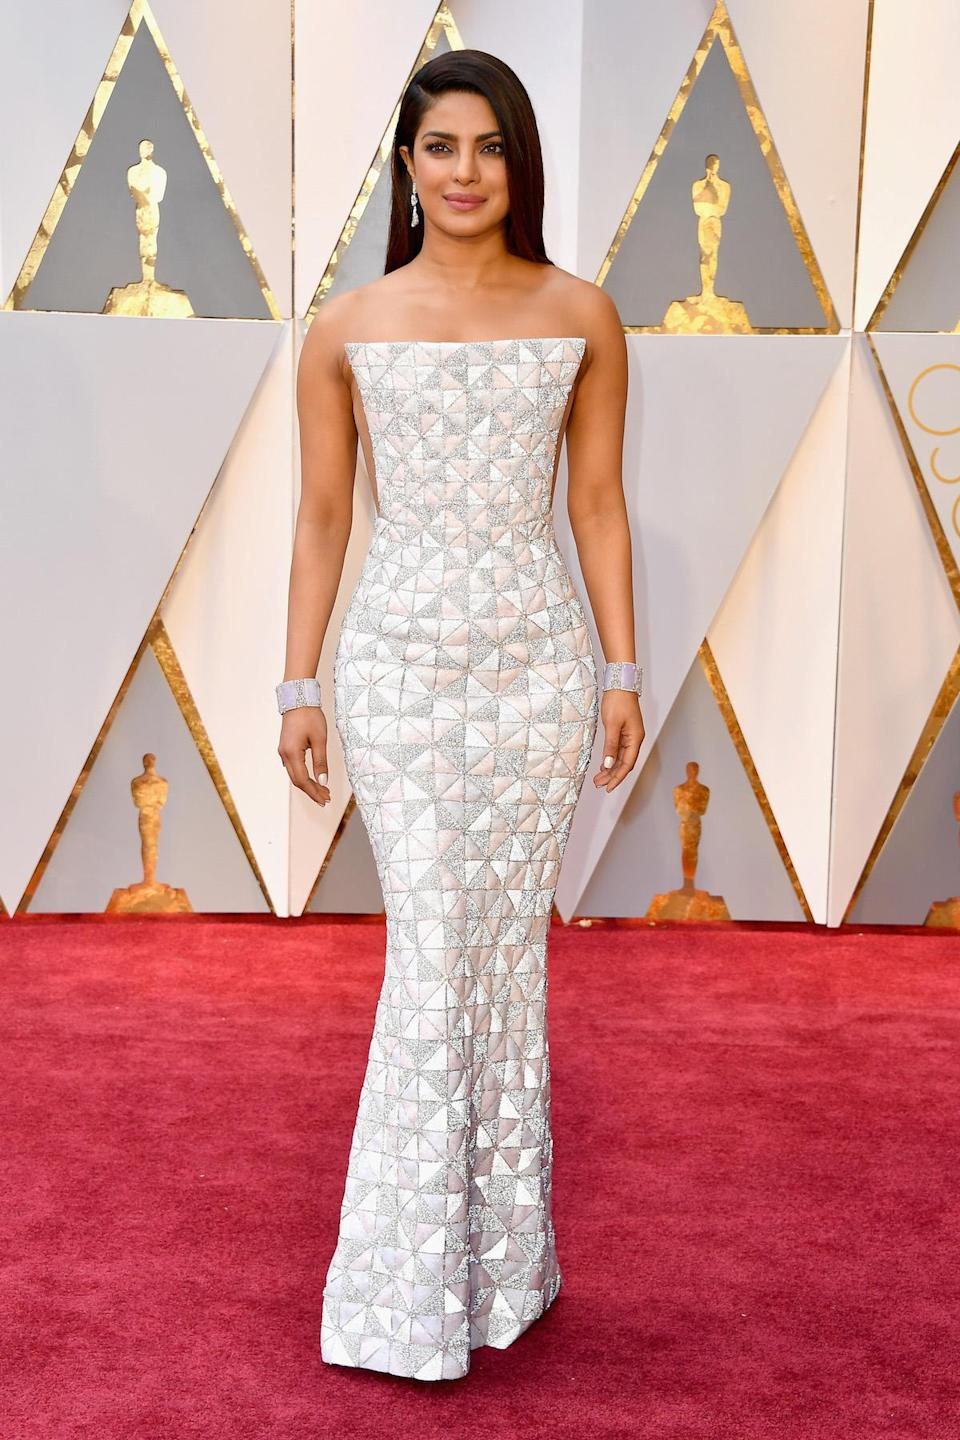 <p>Priyanka Chopra made a risky silhouette an A plus look thanks to impeccable tailoring, accessorizing, and stunning hair and makeup. <em>(Photo: Getty Images)</em> </p>